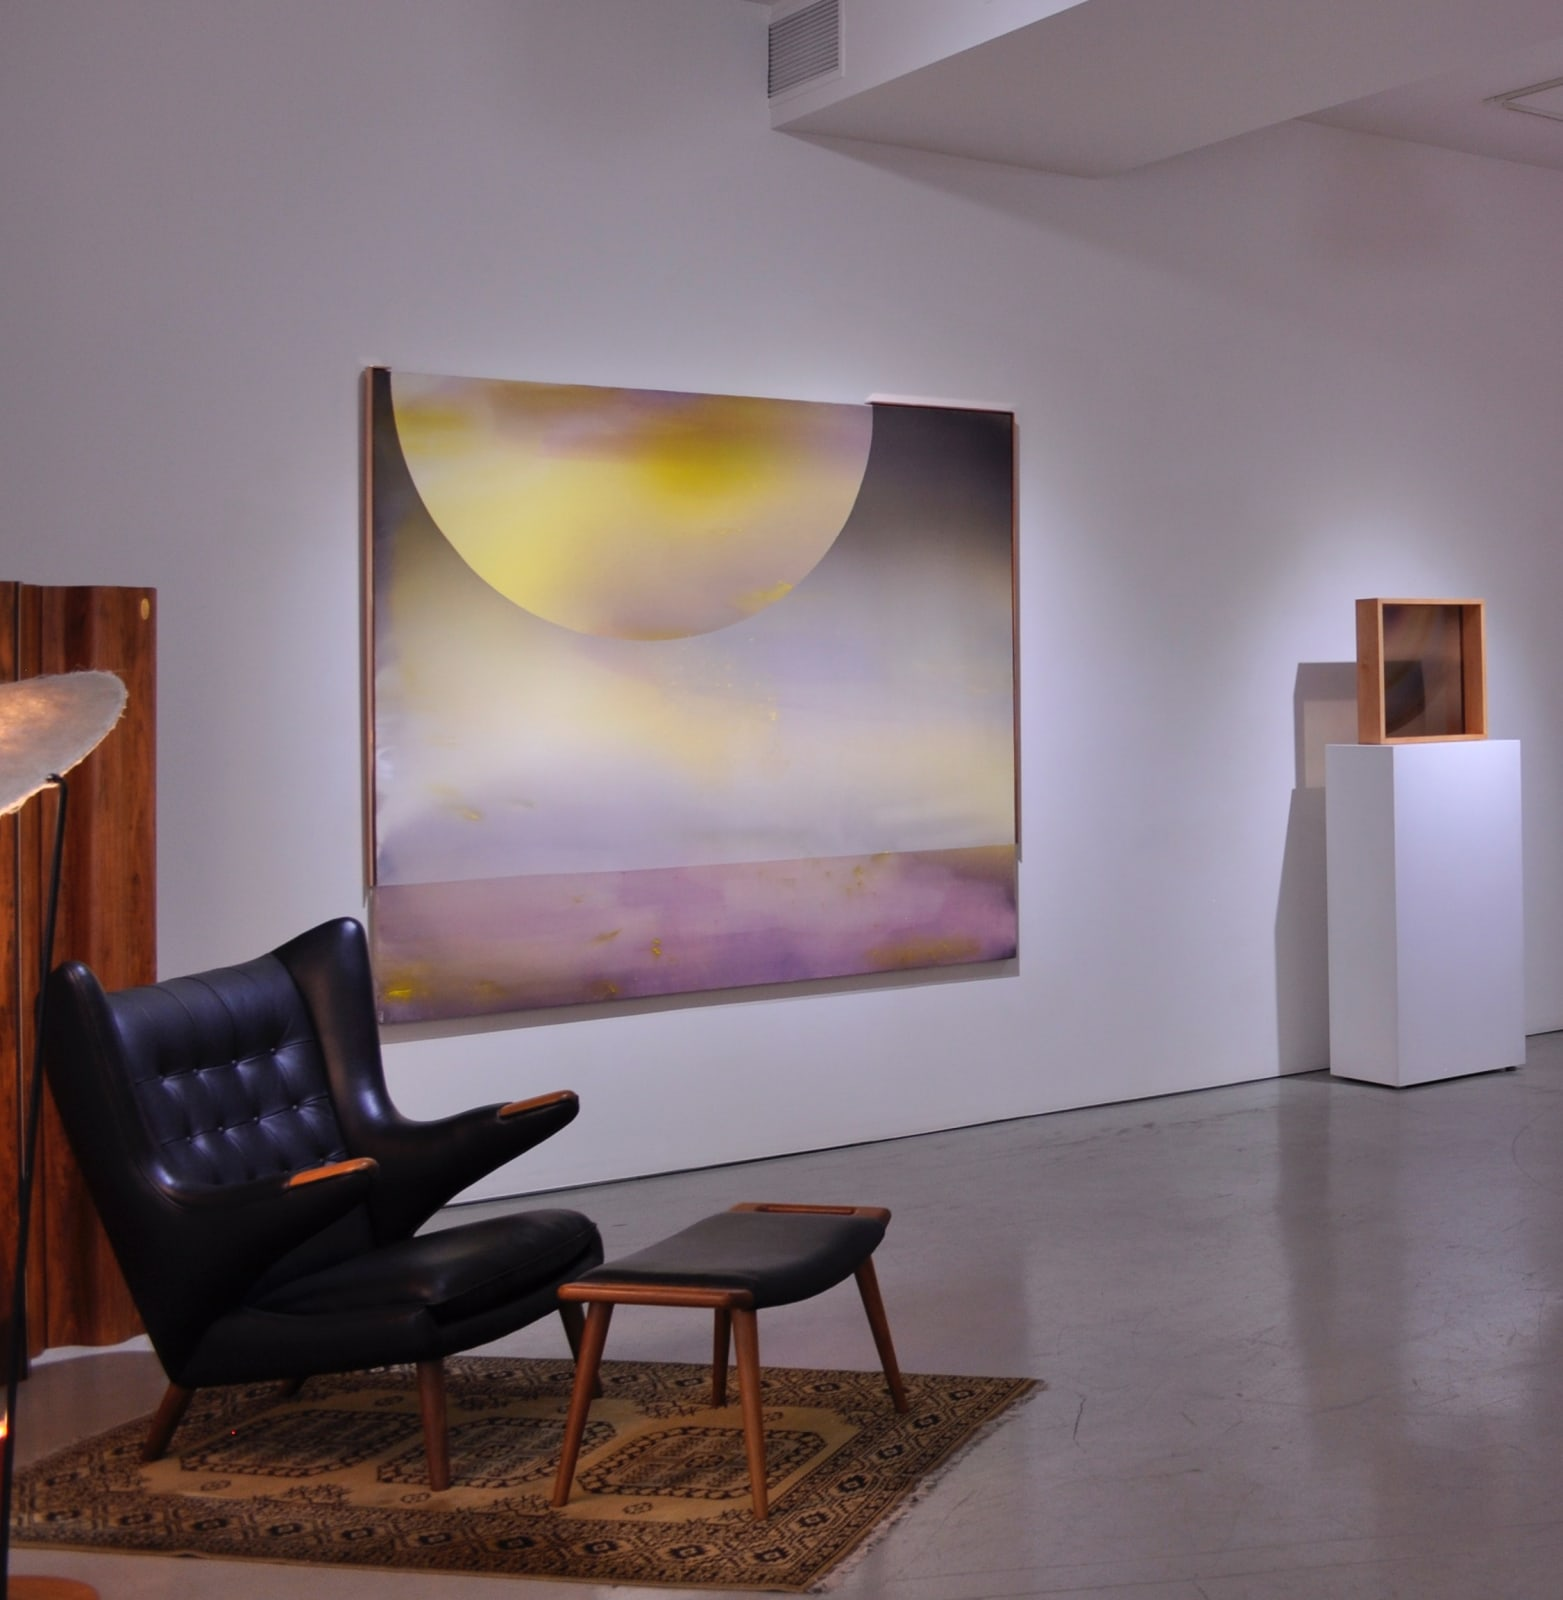 CO-OP | Atomic Bazaar + Joseph Bellows Gallery + Quint Gallery